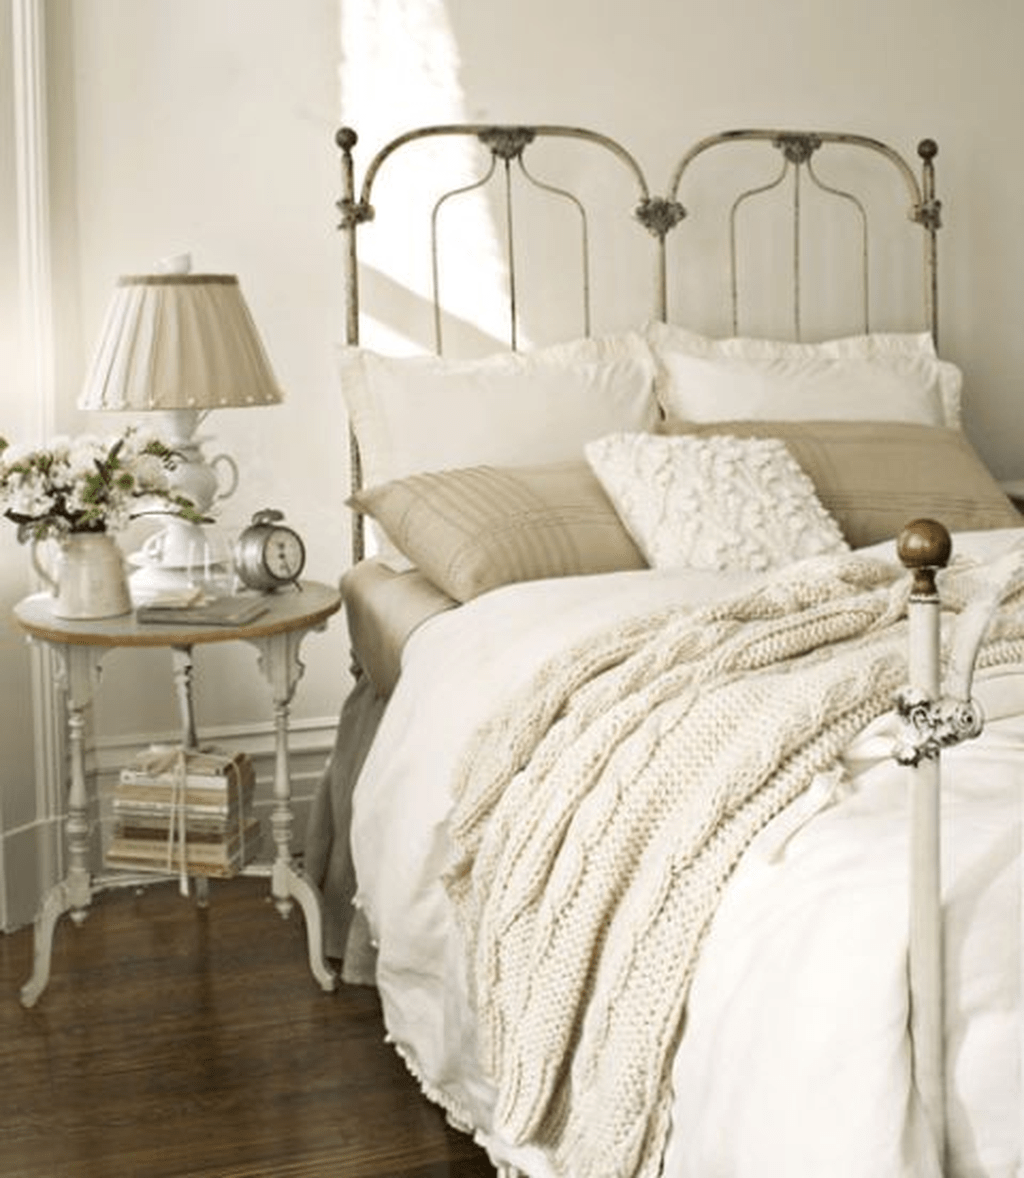 Stunning French Bedroom Decor Ideas That Will Inspire You 08